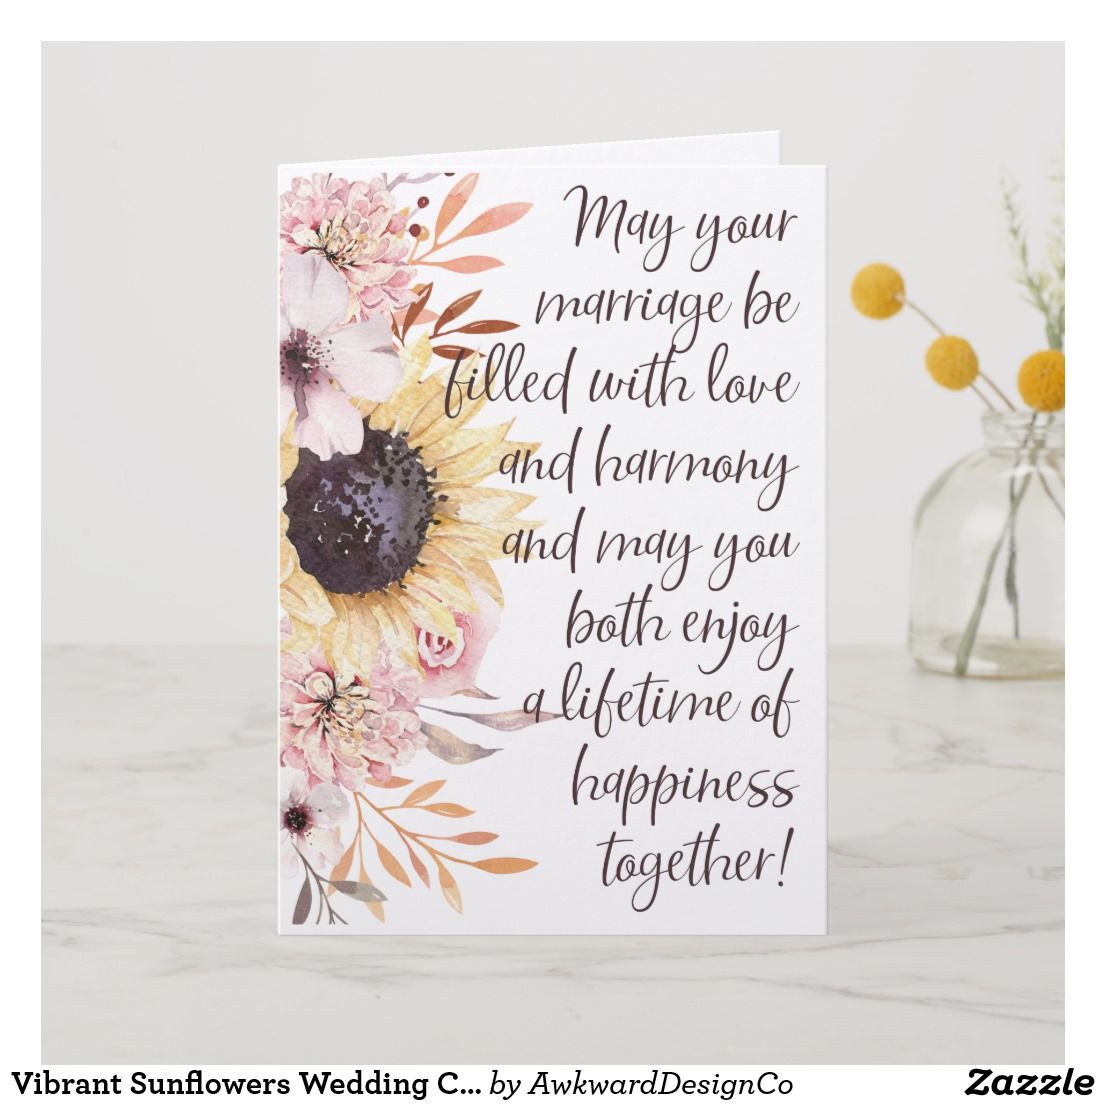 Vibrant Sunflowers Wedding Congratulations Card Zazzle Com In 2020 Wedding Congratulations Card Wedding Wishes Messages Wedding Card Messages